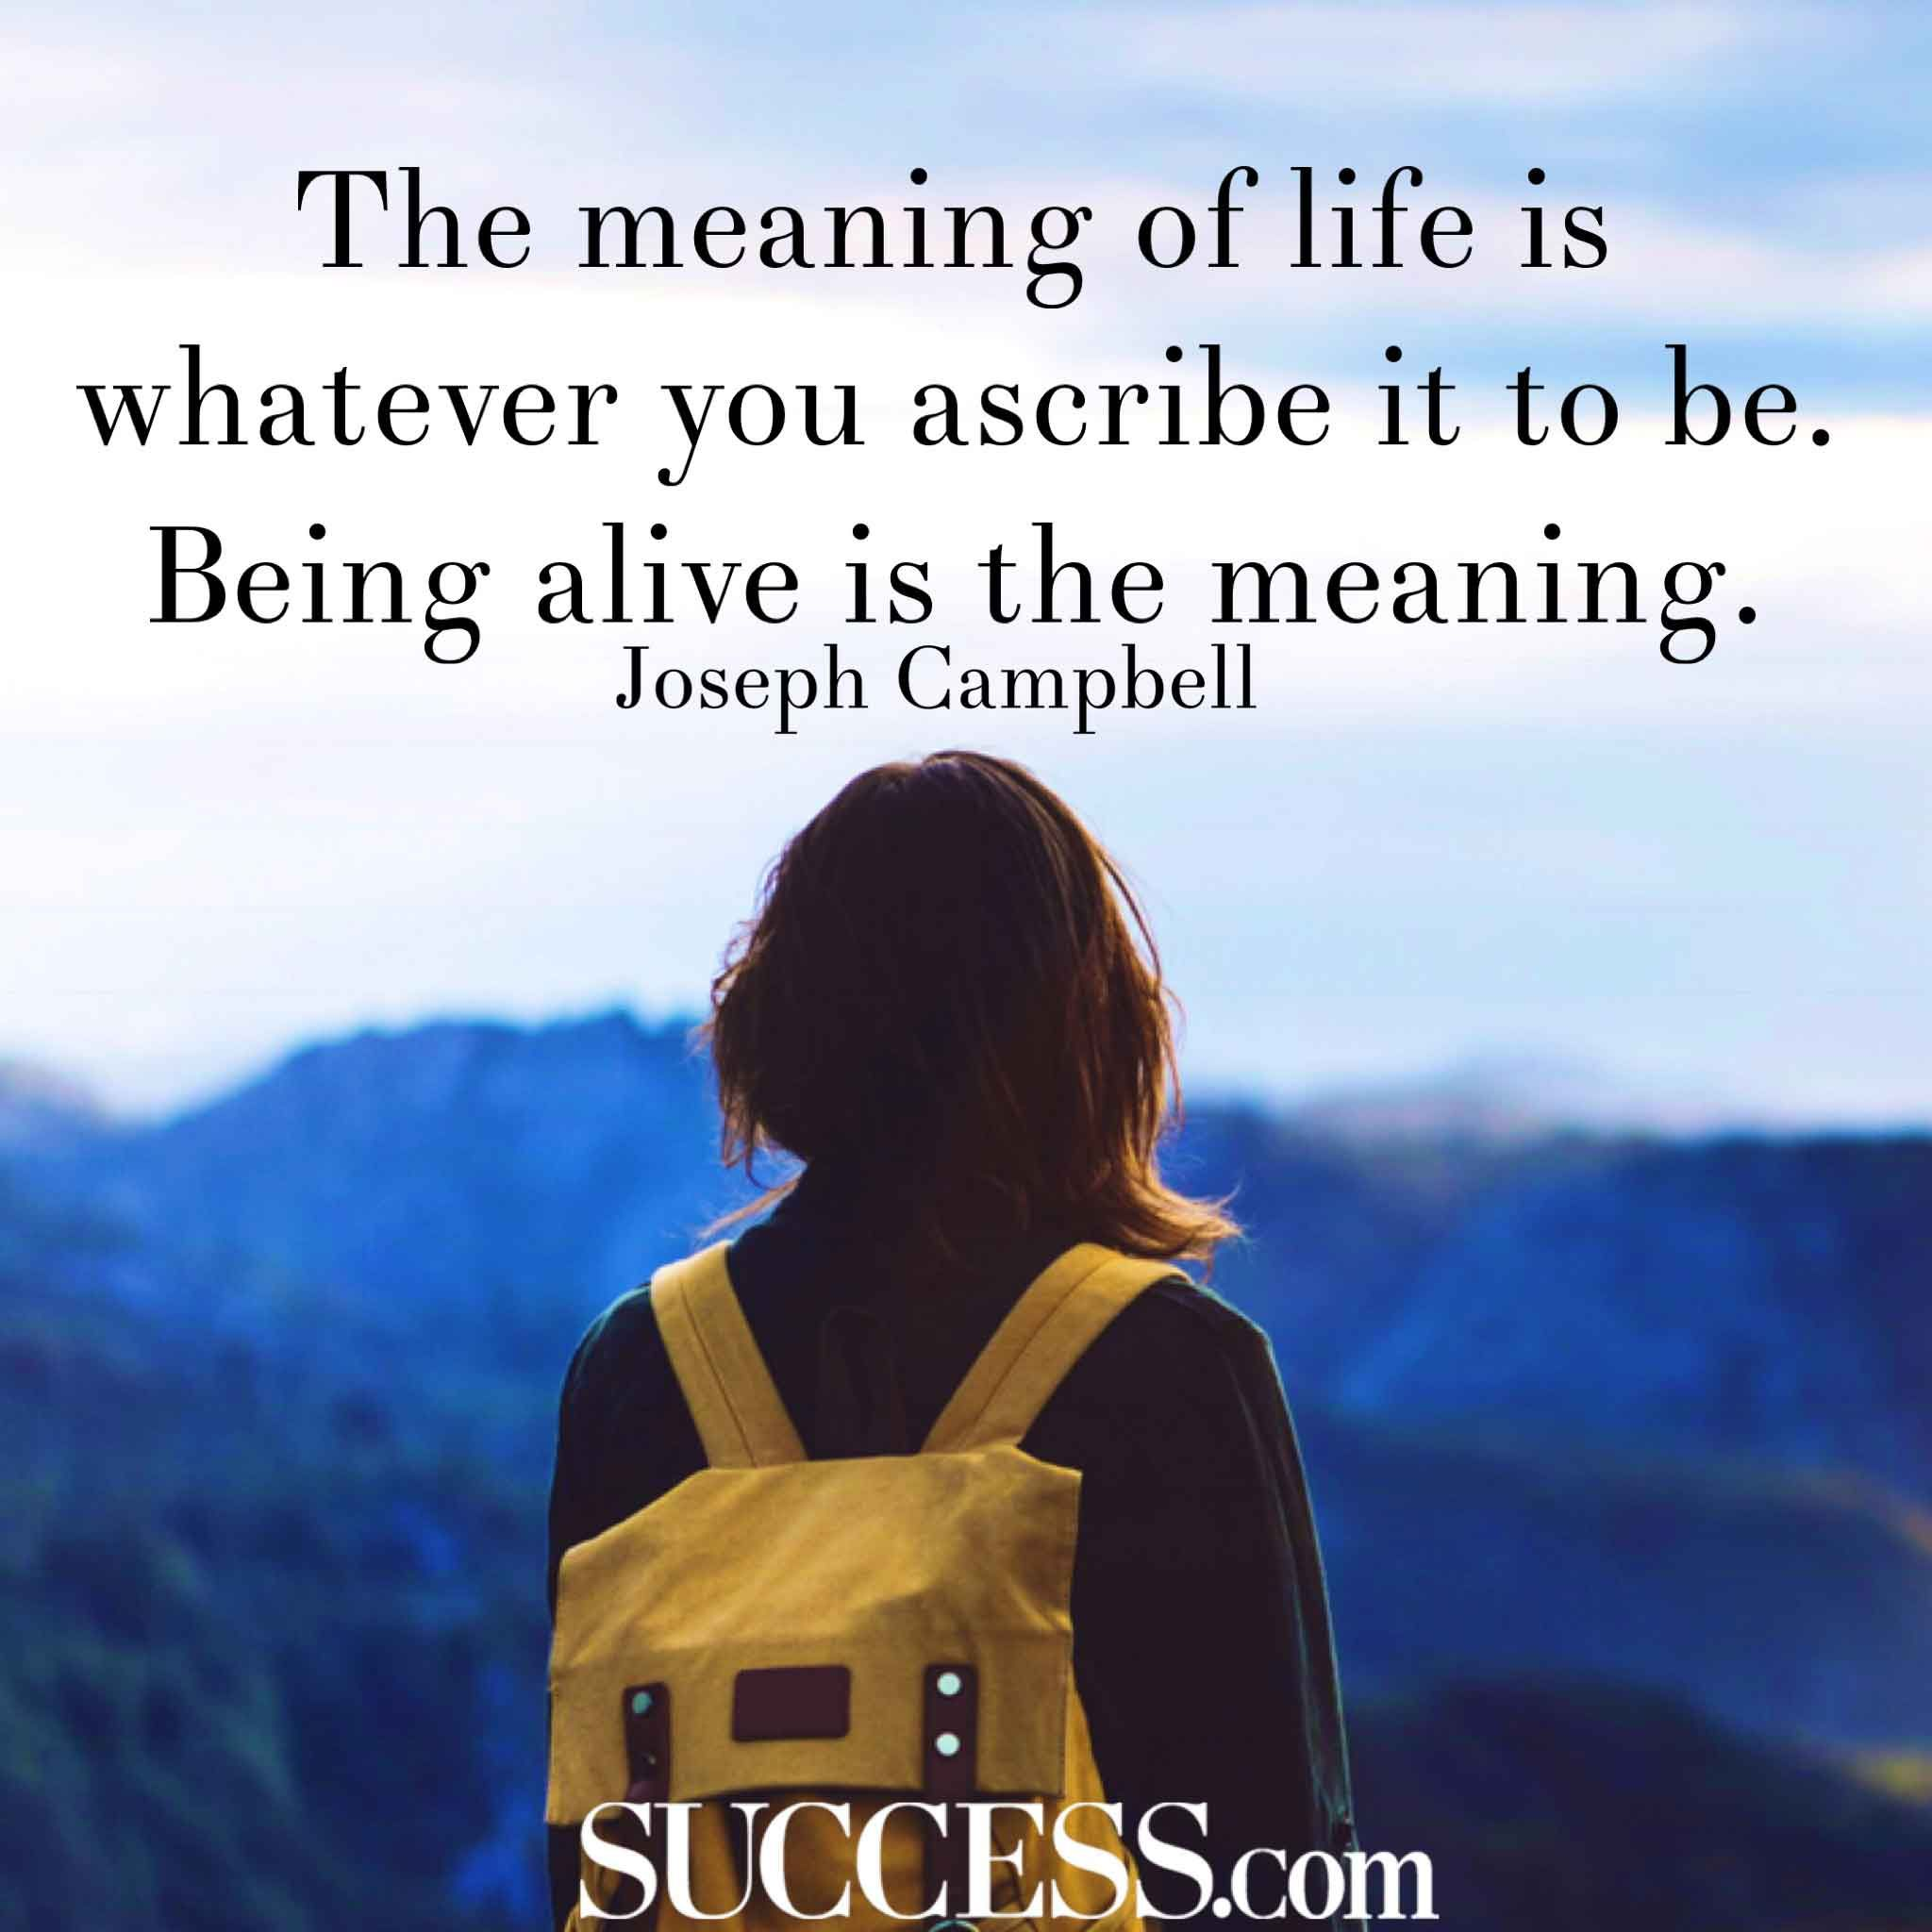 Meaning Of Life Quotes Fascinating The Meaning Of Life In 15 Wise Quotes  Success  Self Help